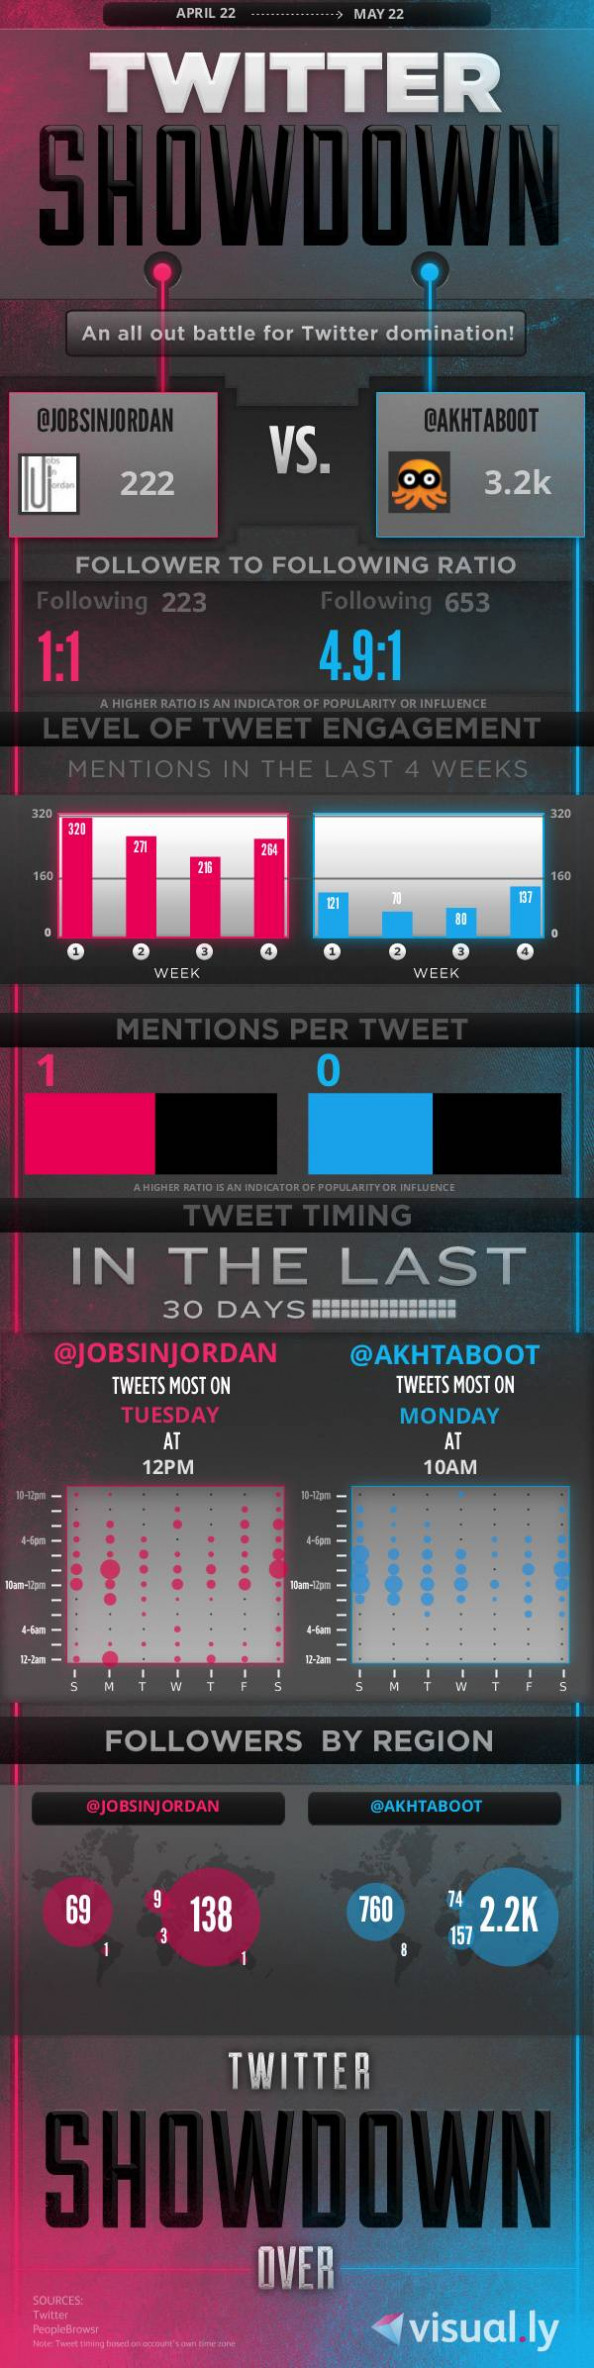 Jobs In Jordan Vs Aktaboot Infographic